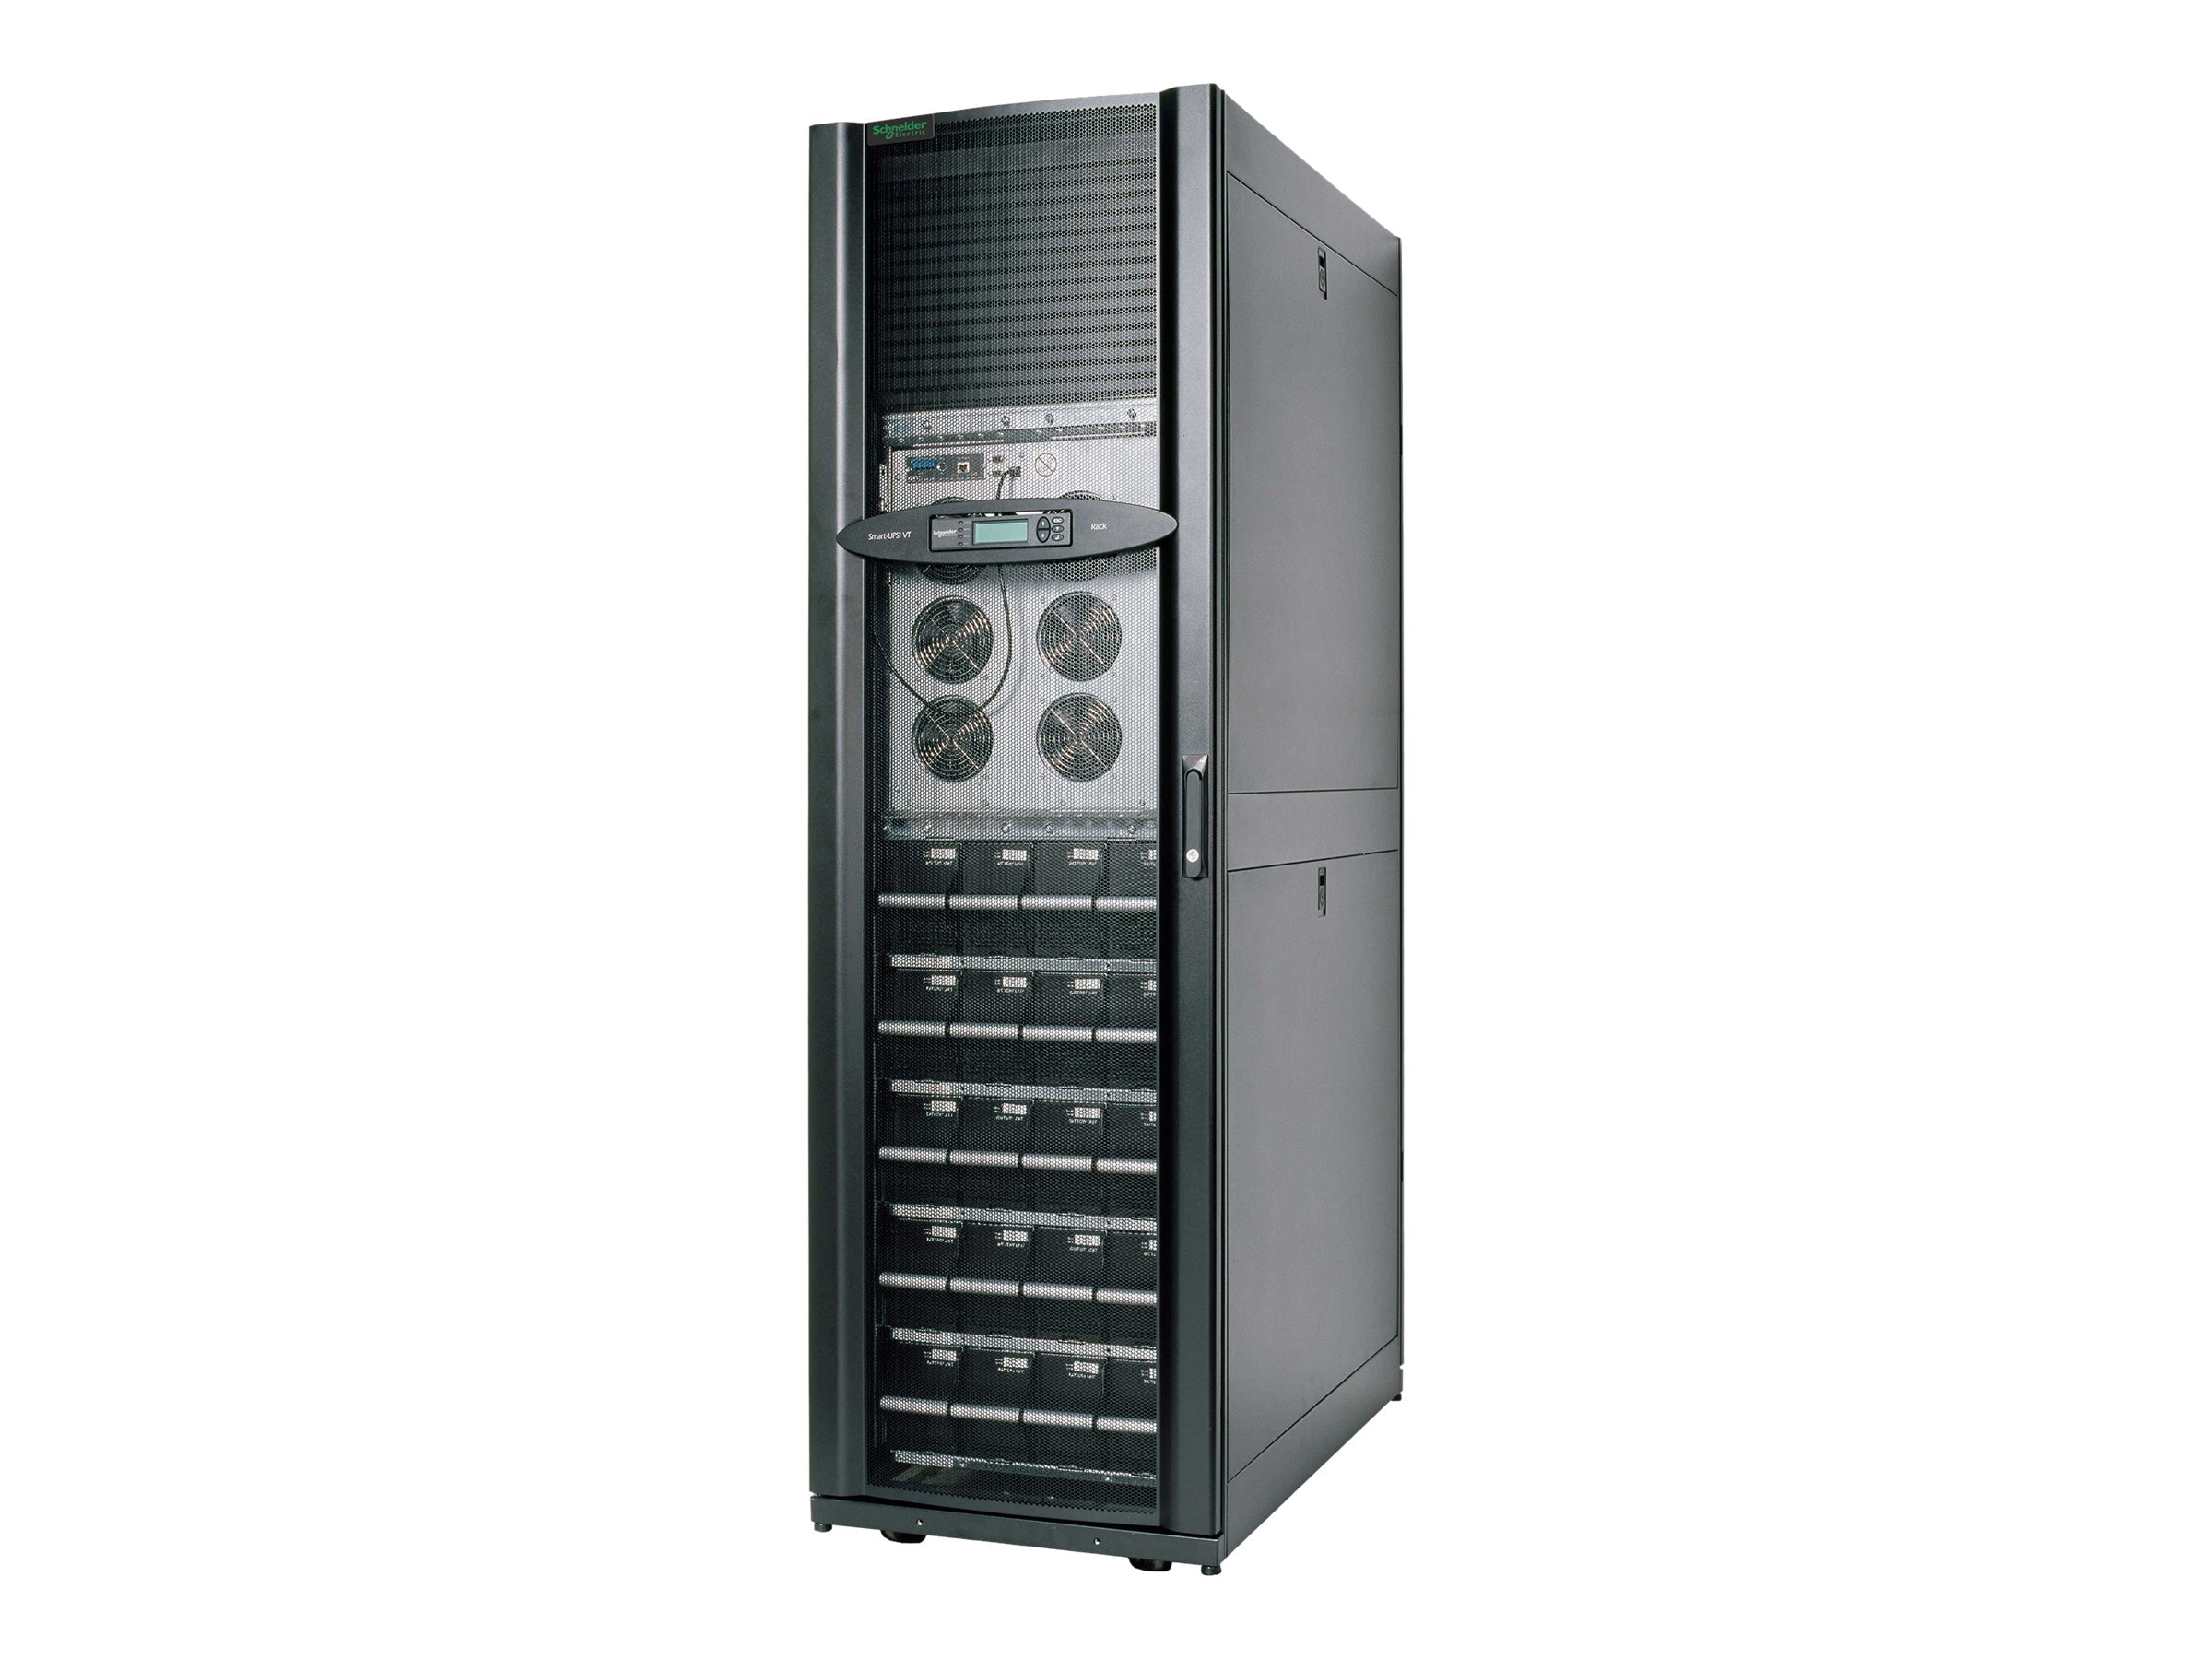 APC Smart-UPS VT 20kVA 208V Rack Mounted, (2) Battery Modules Expandable to (5), PDU, Startup, SUVTR20KF2B5S, 7529610, Battery Backup/UPS